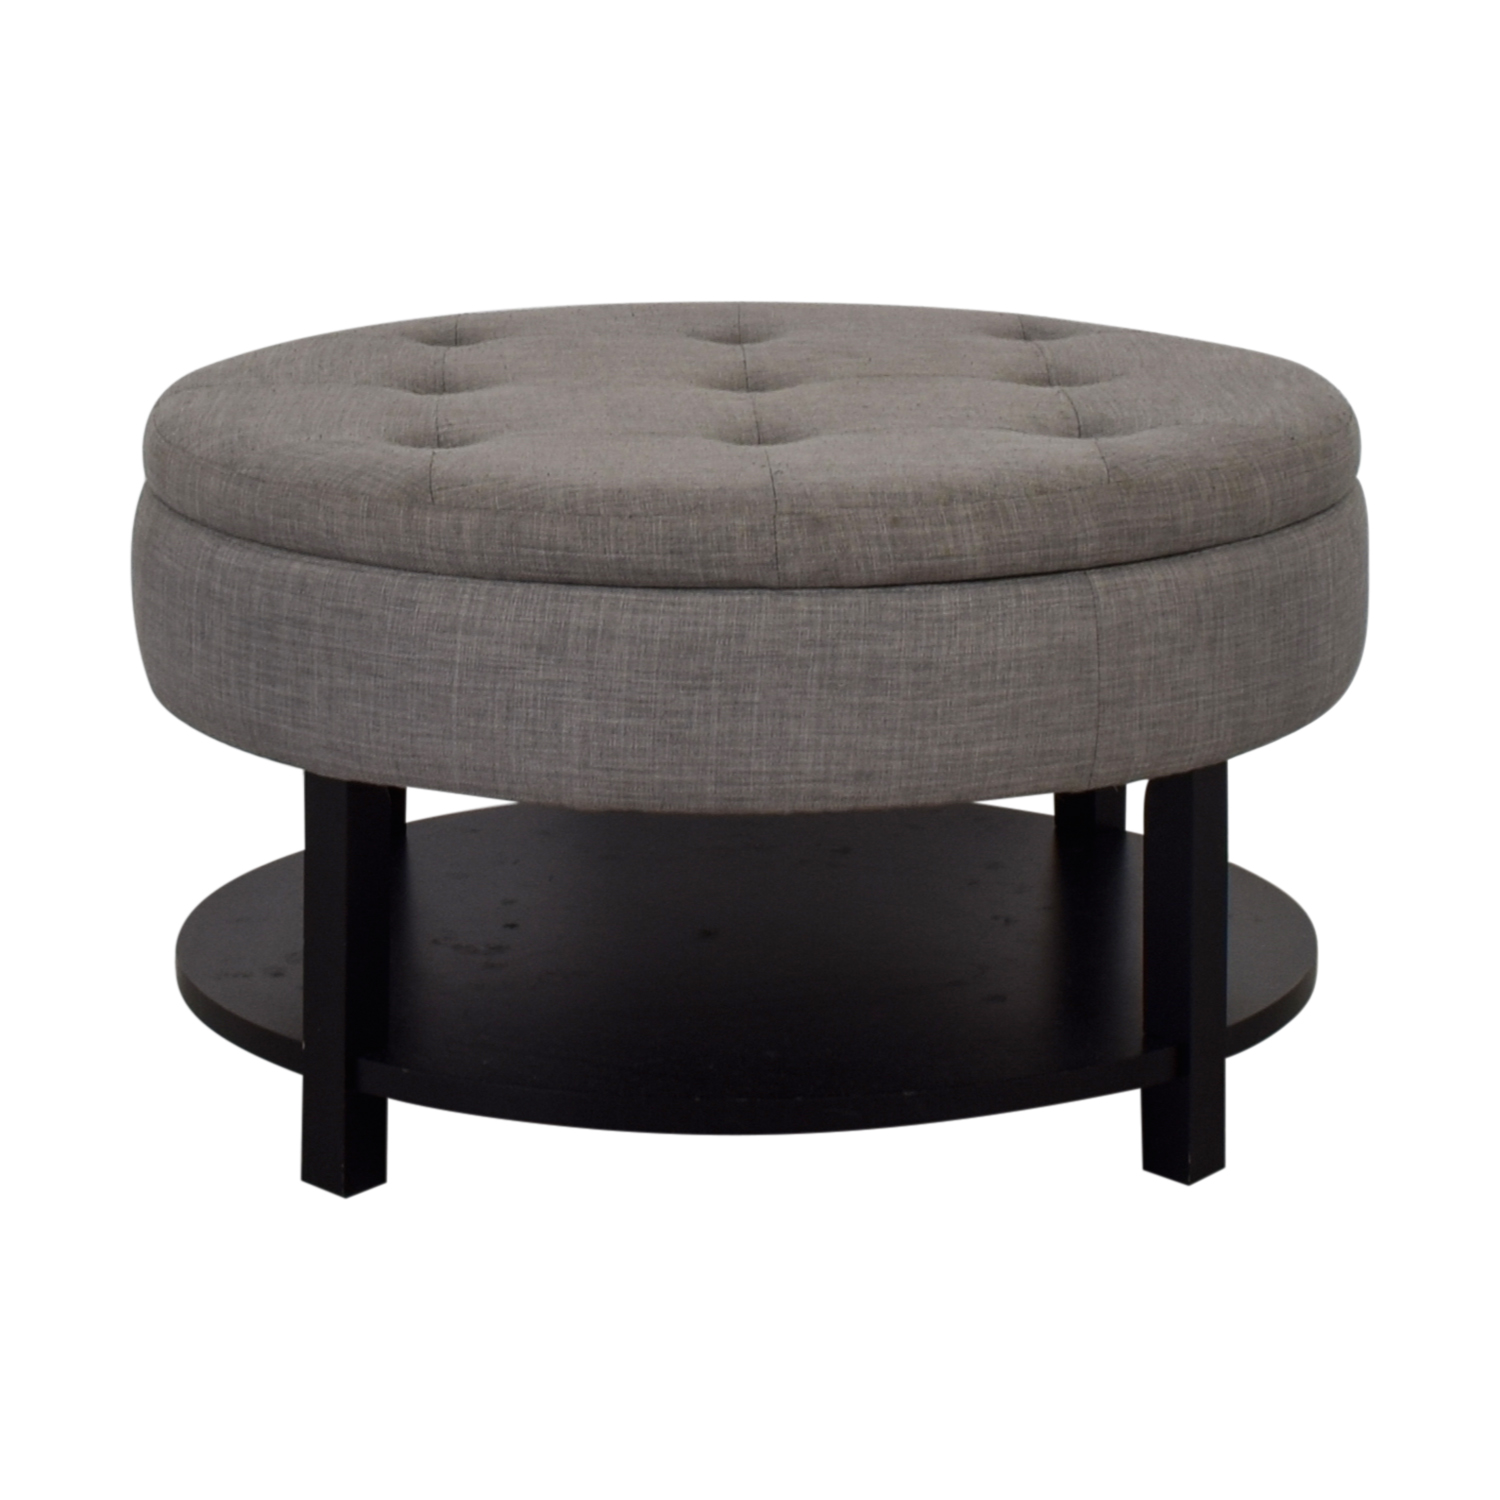 Hayneedle Hayneedle Belham Living Dalton Grey Coffee Table Or Storage  Ottoman With Tray Shelf Grey, ...